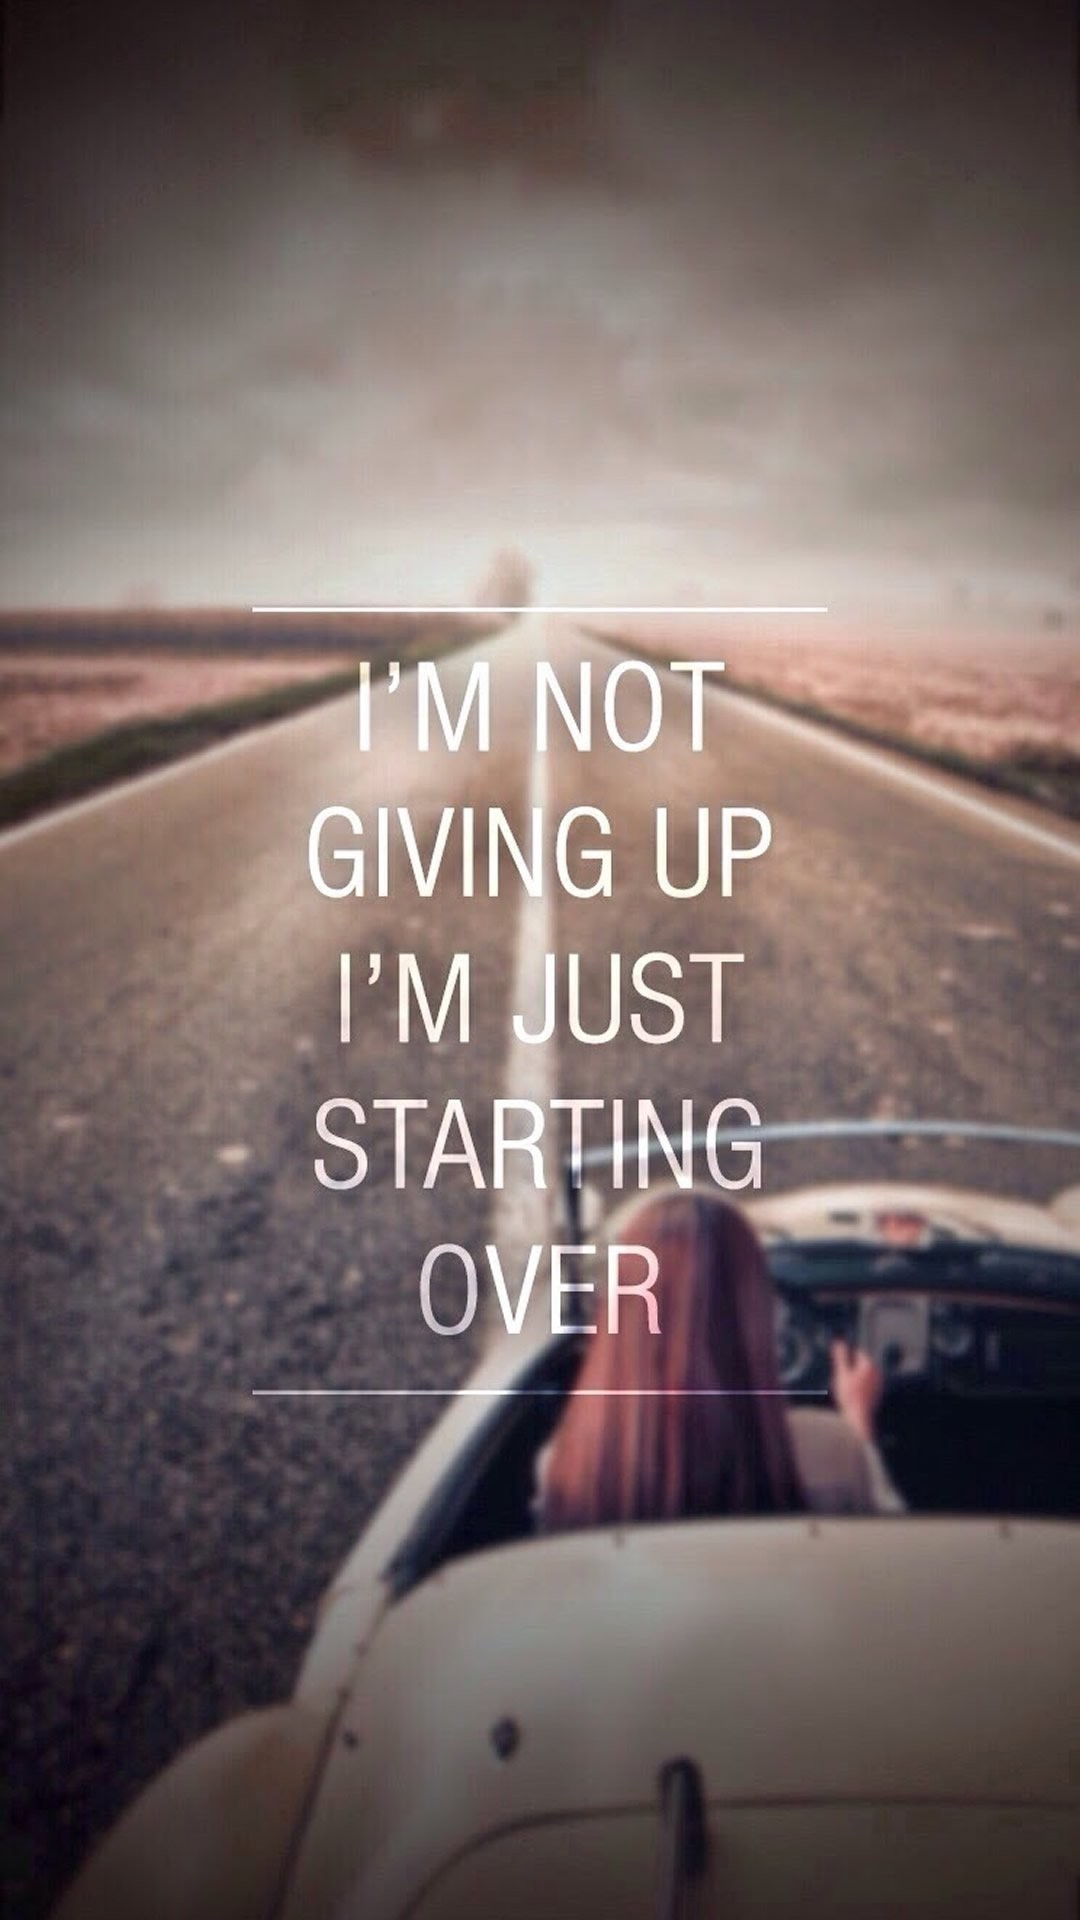 I'm not giving up. I'm just starting over